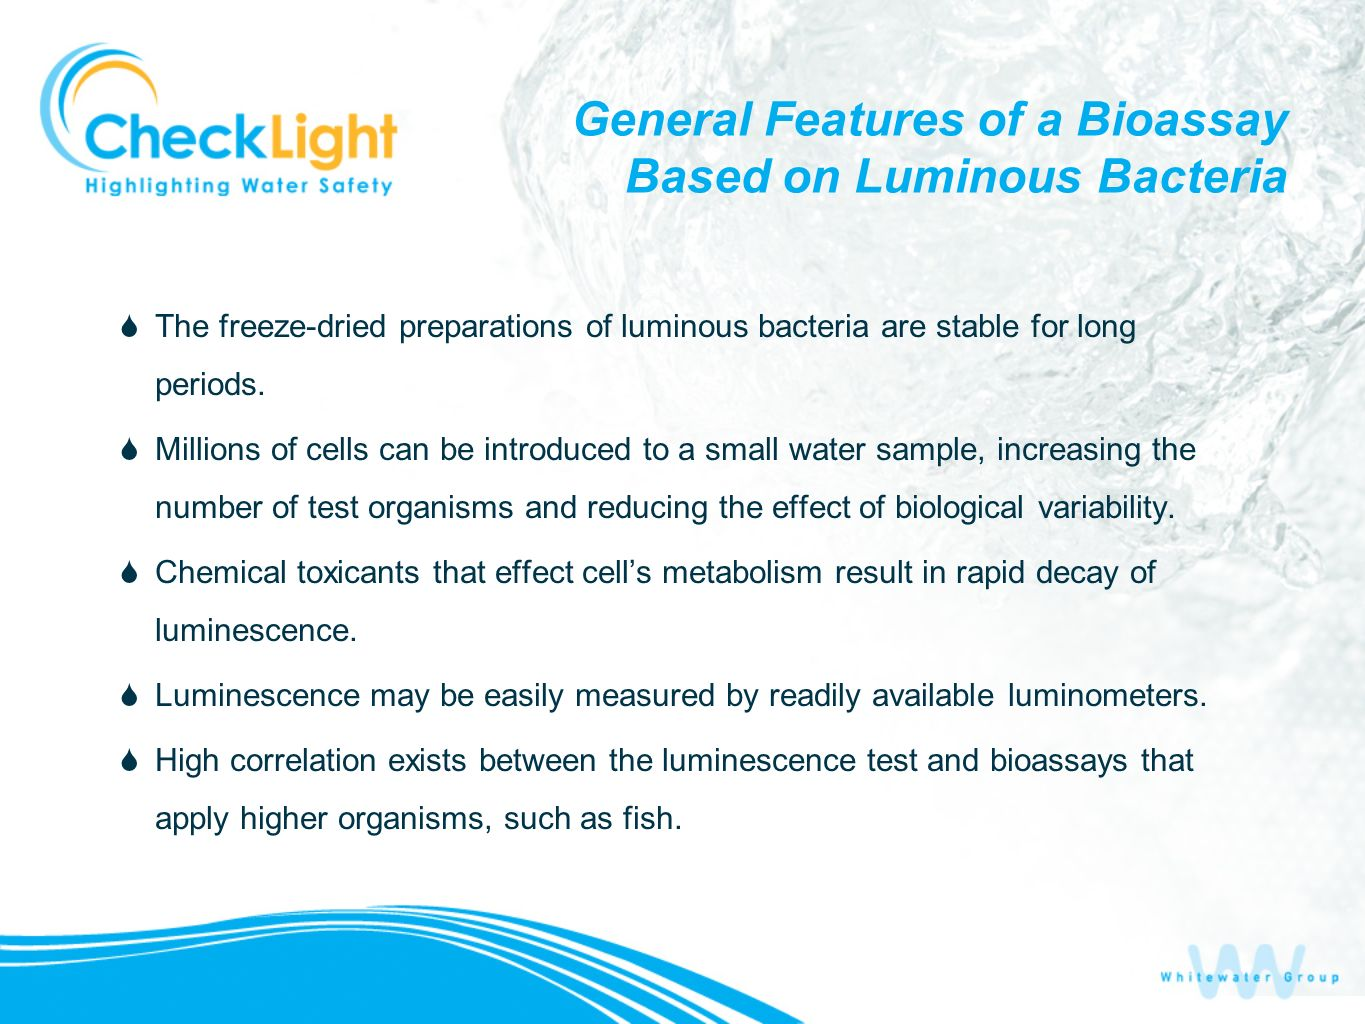 General Features of a Bioassay Based on Luminous Bacteria